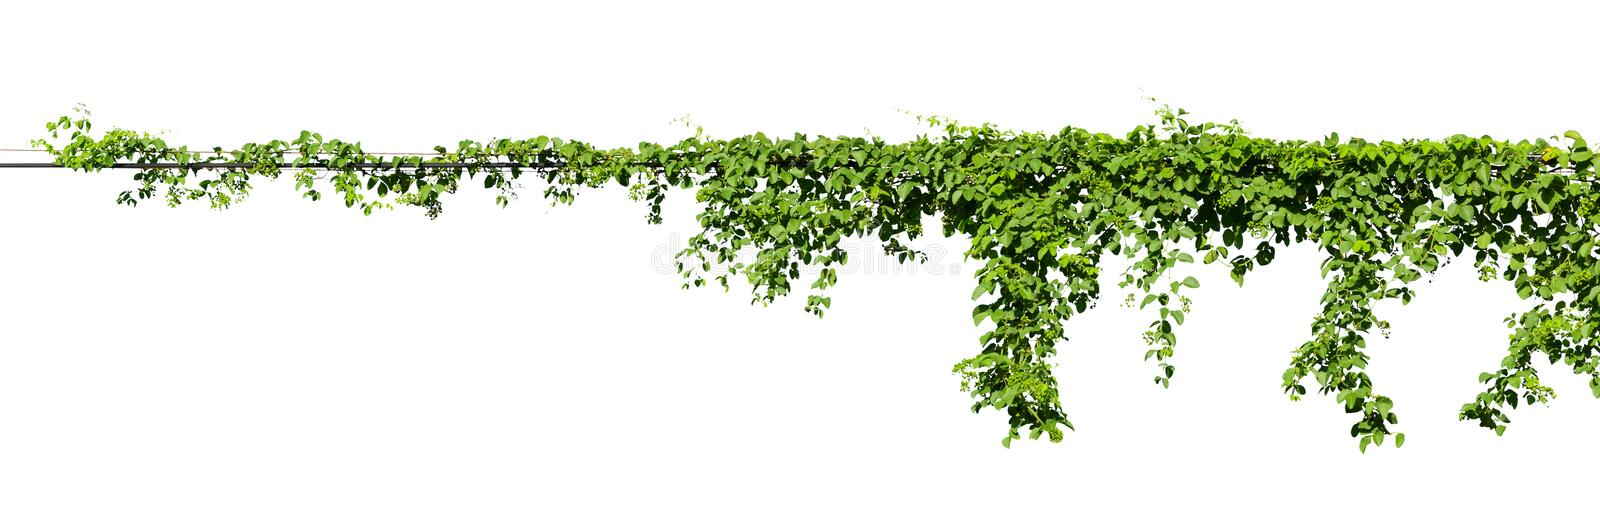 Vine plant climbing isolated on white background with clipping path included stock photography